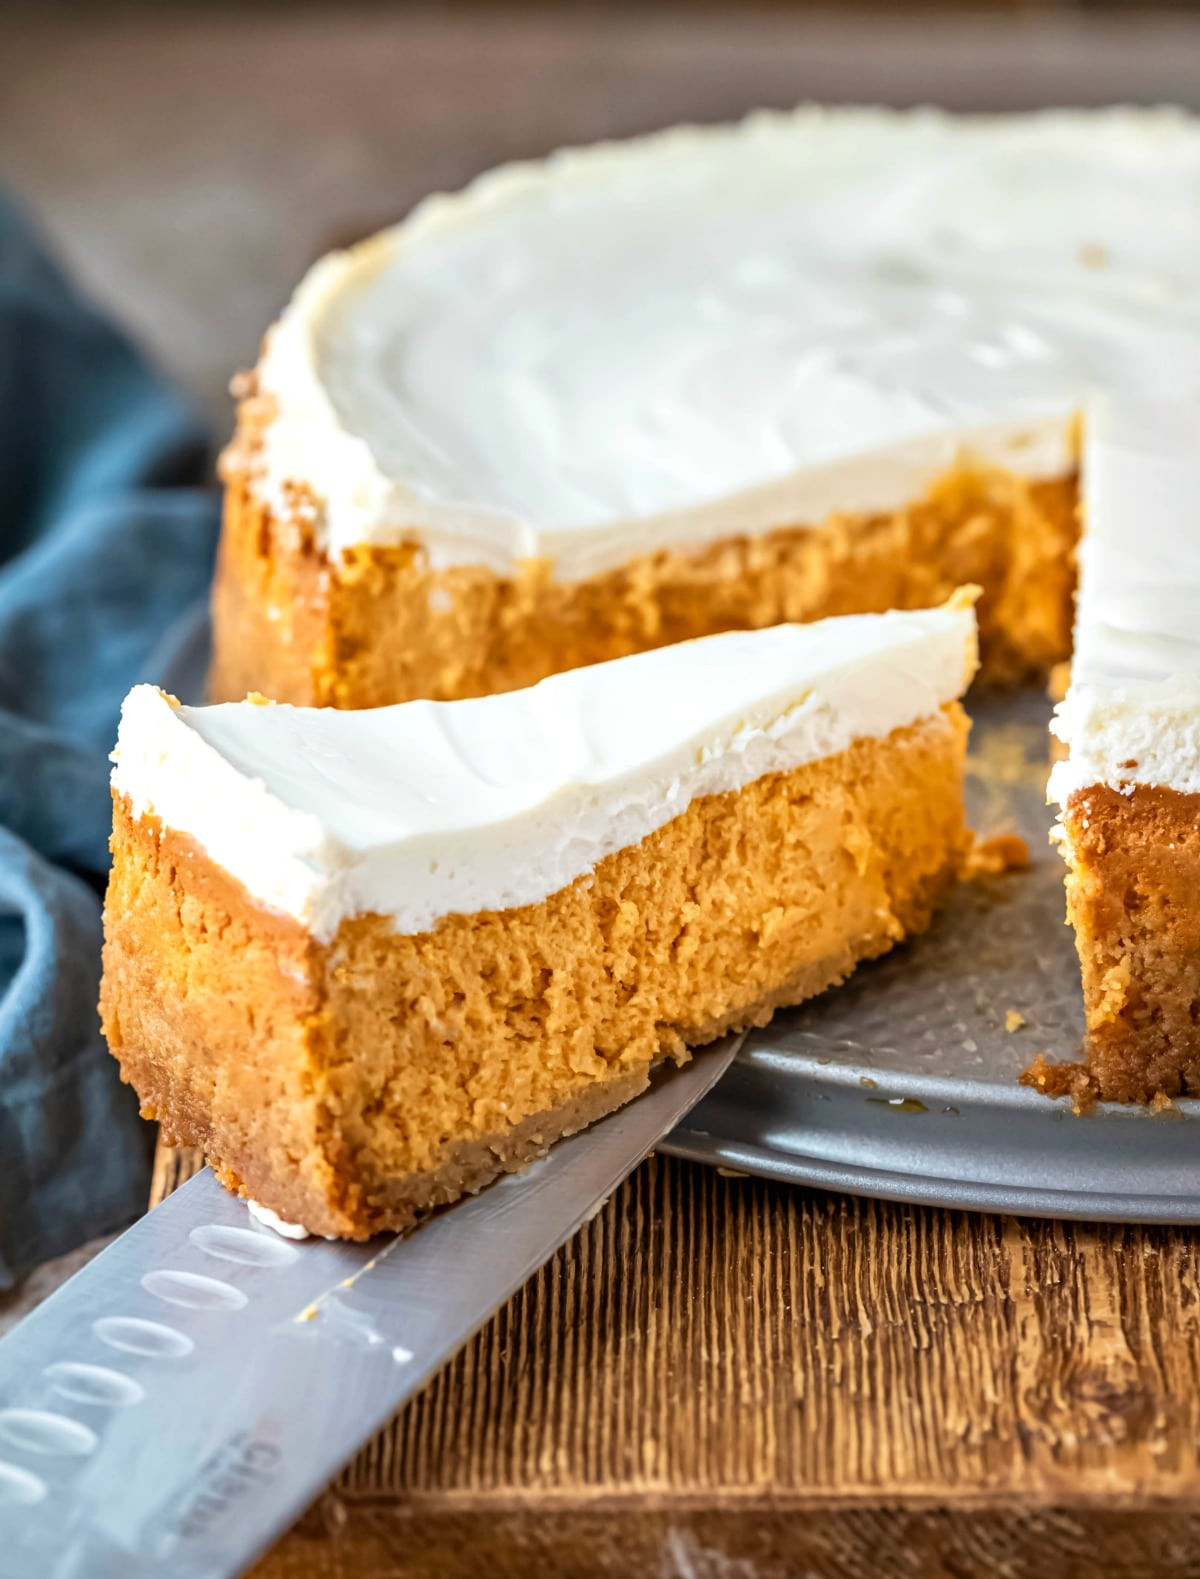 Slice of pumpkin cheesecake next to the entire cheesecake.